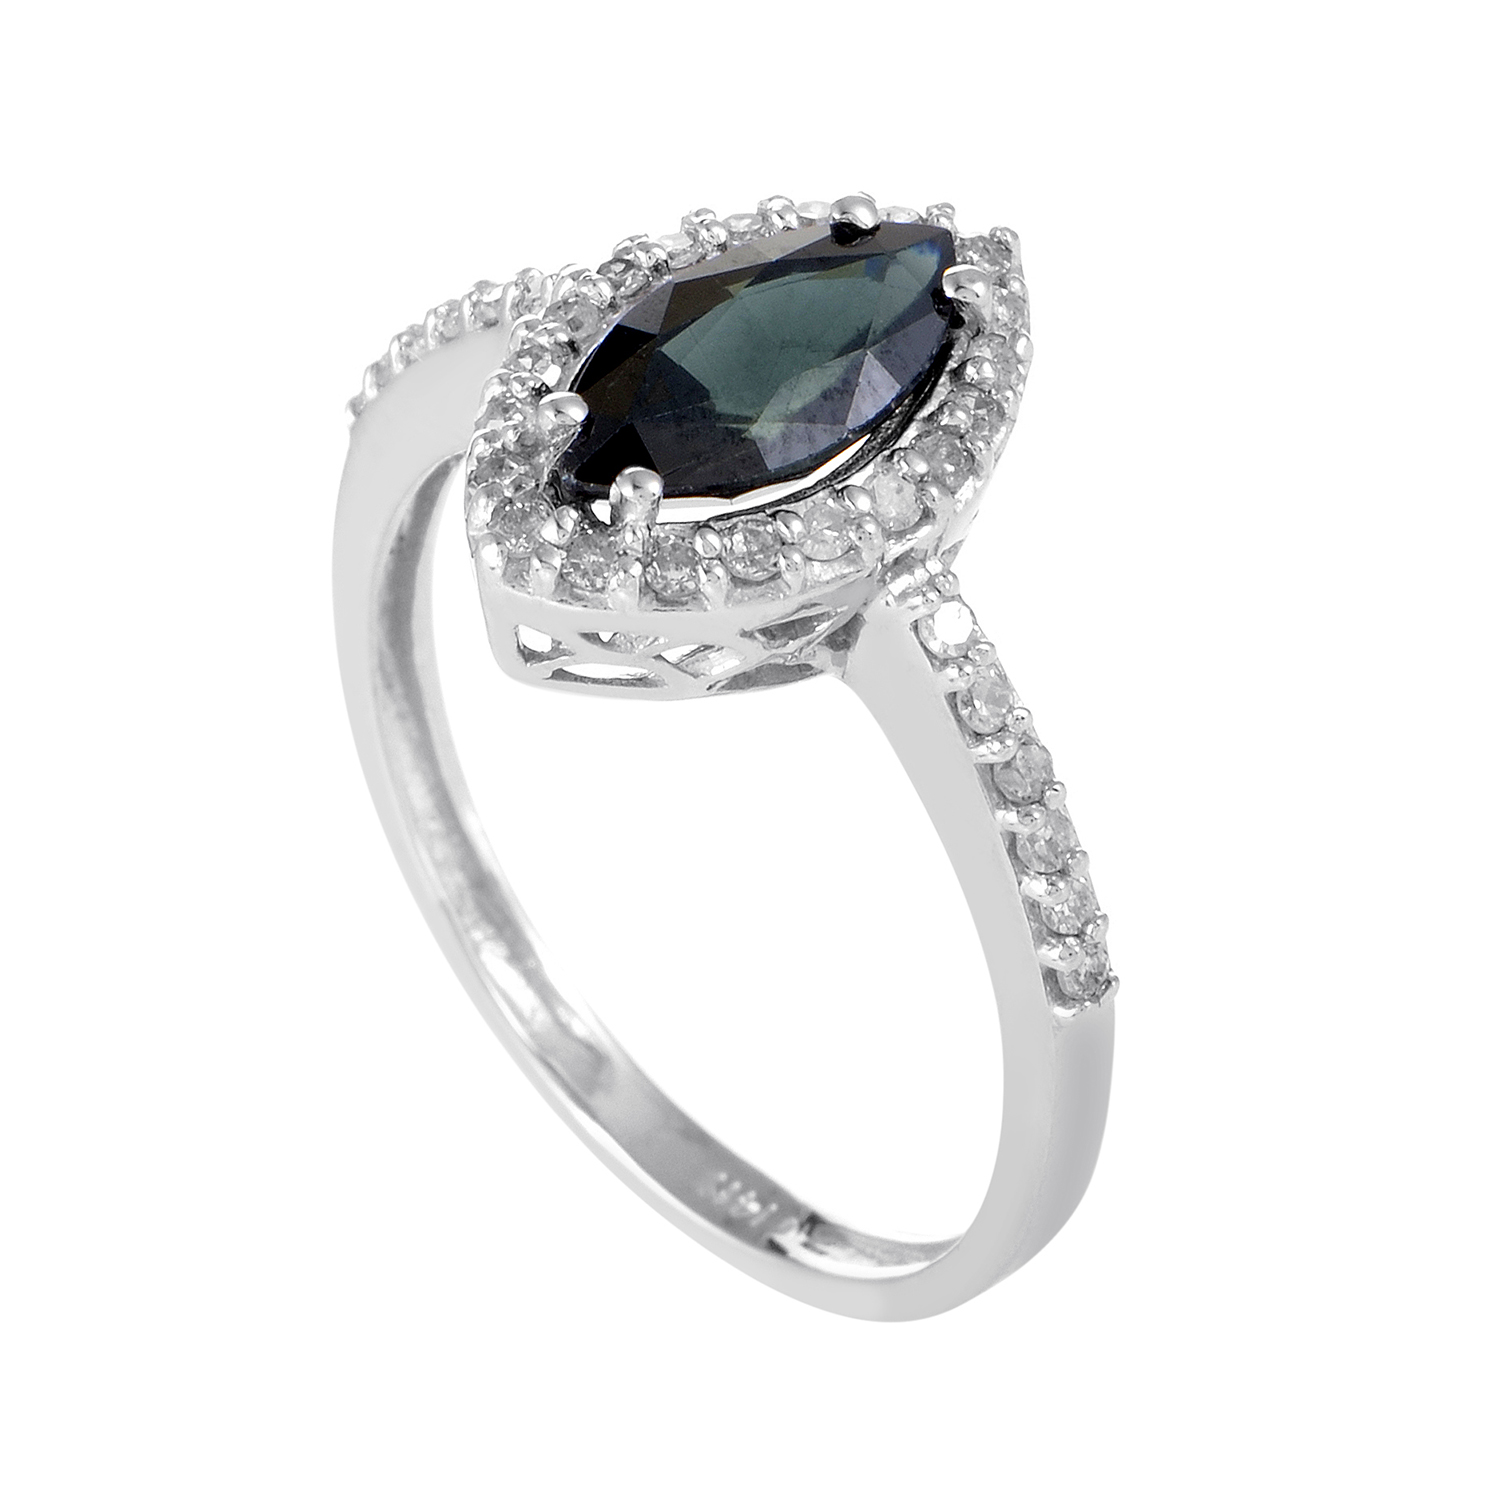 Women's 14K White Gold Diamond & Marquise Sapphire Ring RC4-10334WSA